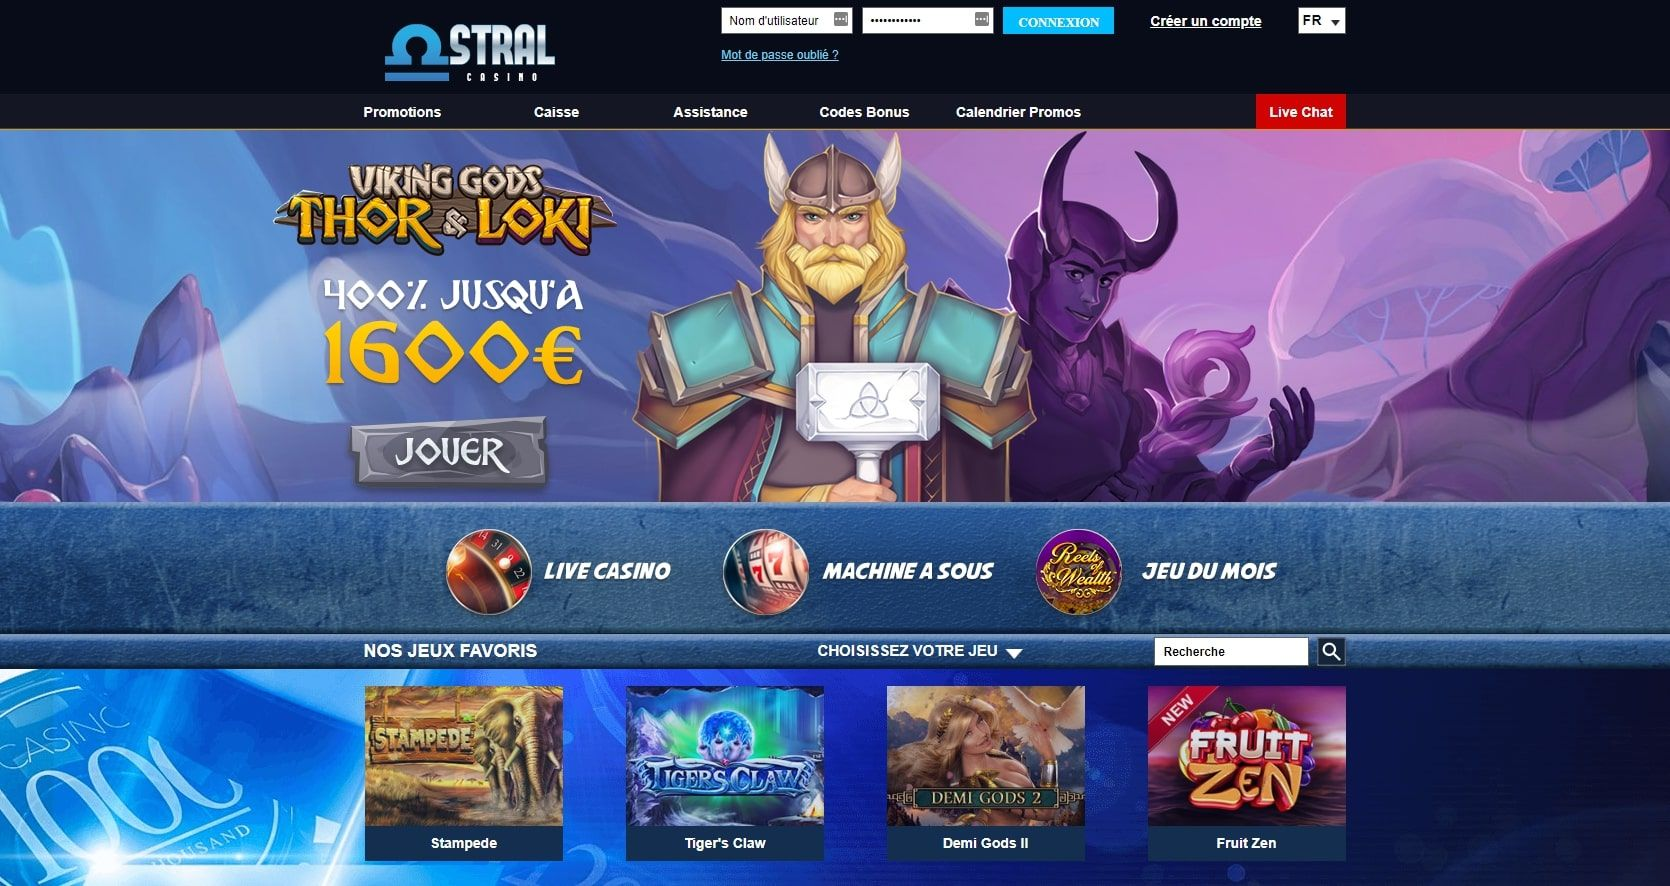 Astral casino avis : quels services propose le casino ?